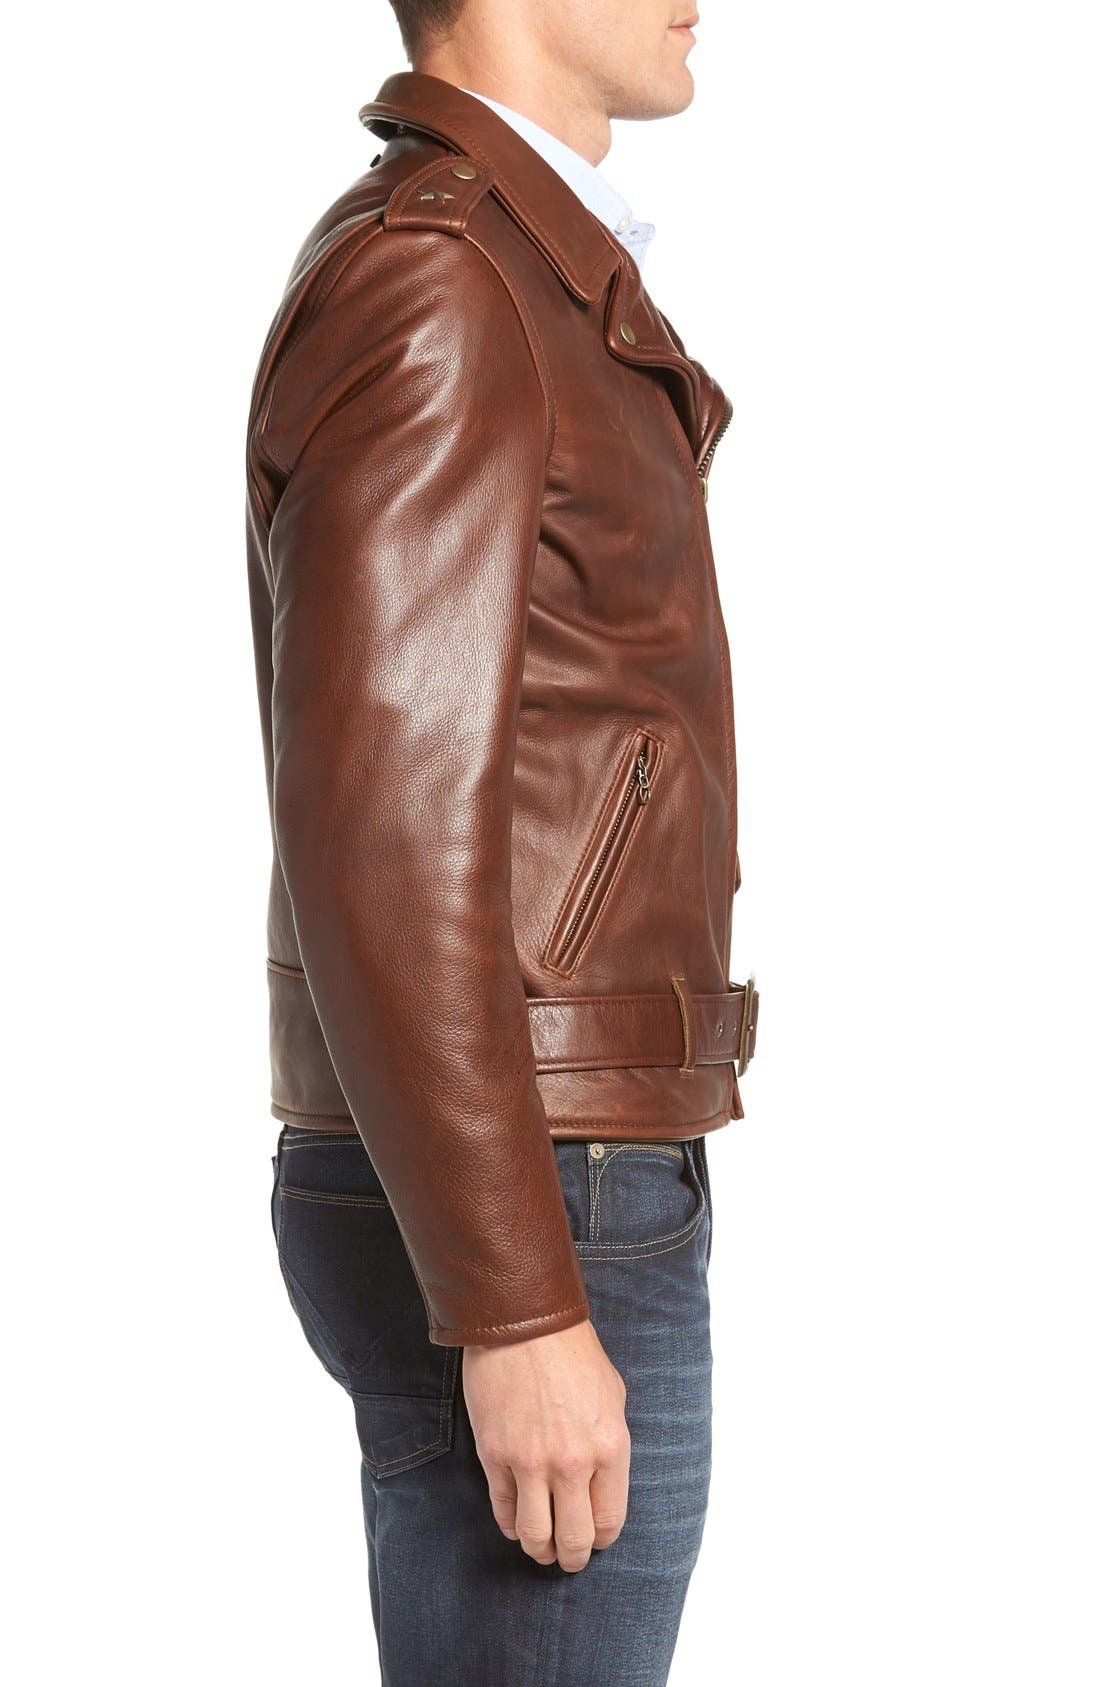 '50s Oil Tanned Cowhide Leather Moto Jacket,                             Alternate thumbnail 9, color,                             BROWN